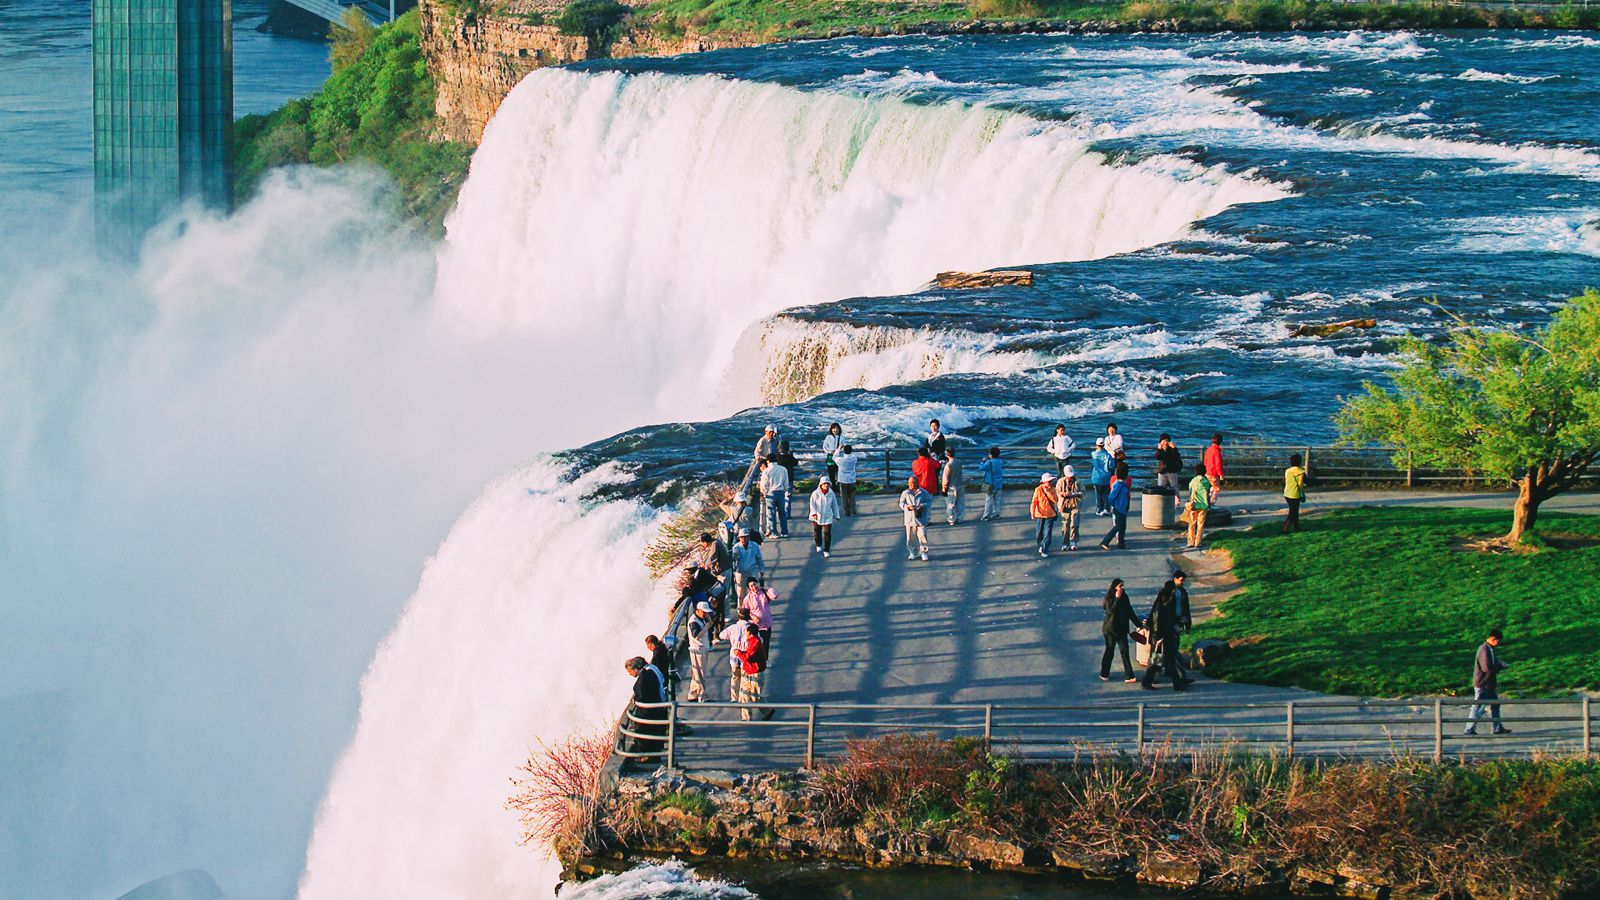 10 Amazing Waterfalls Around The World You Need To See! (7)